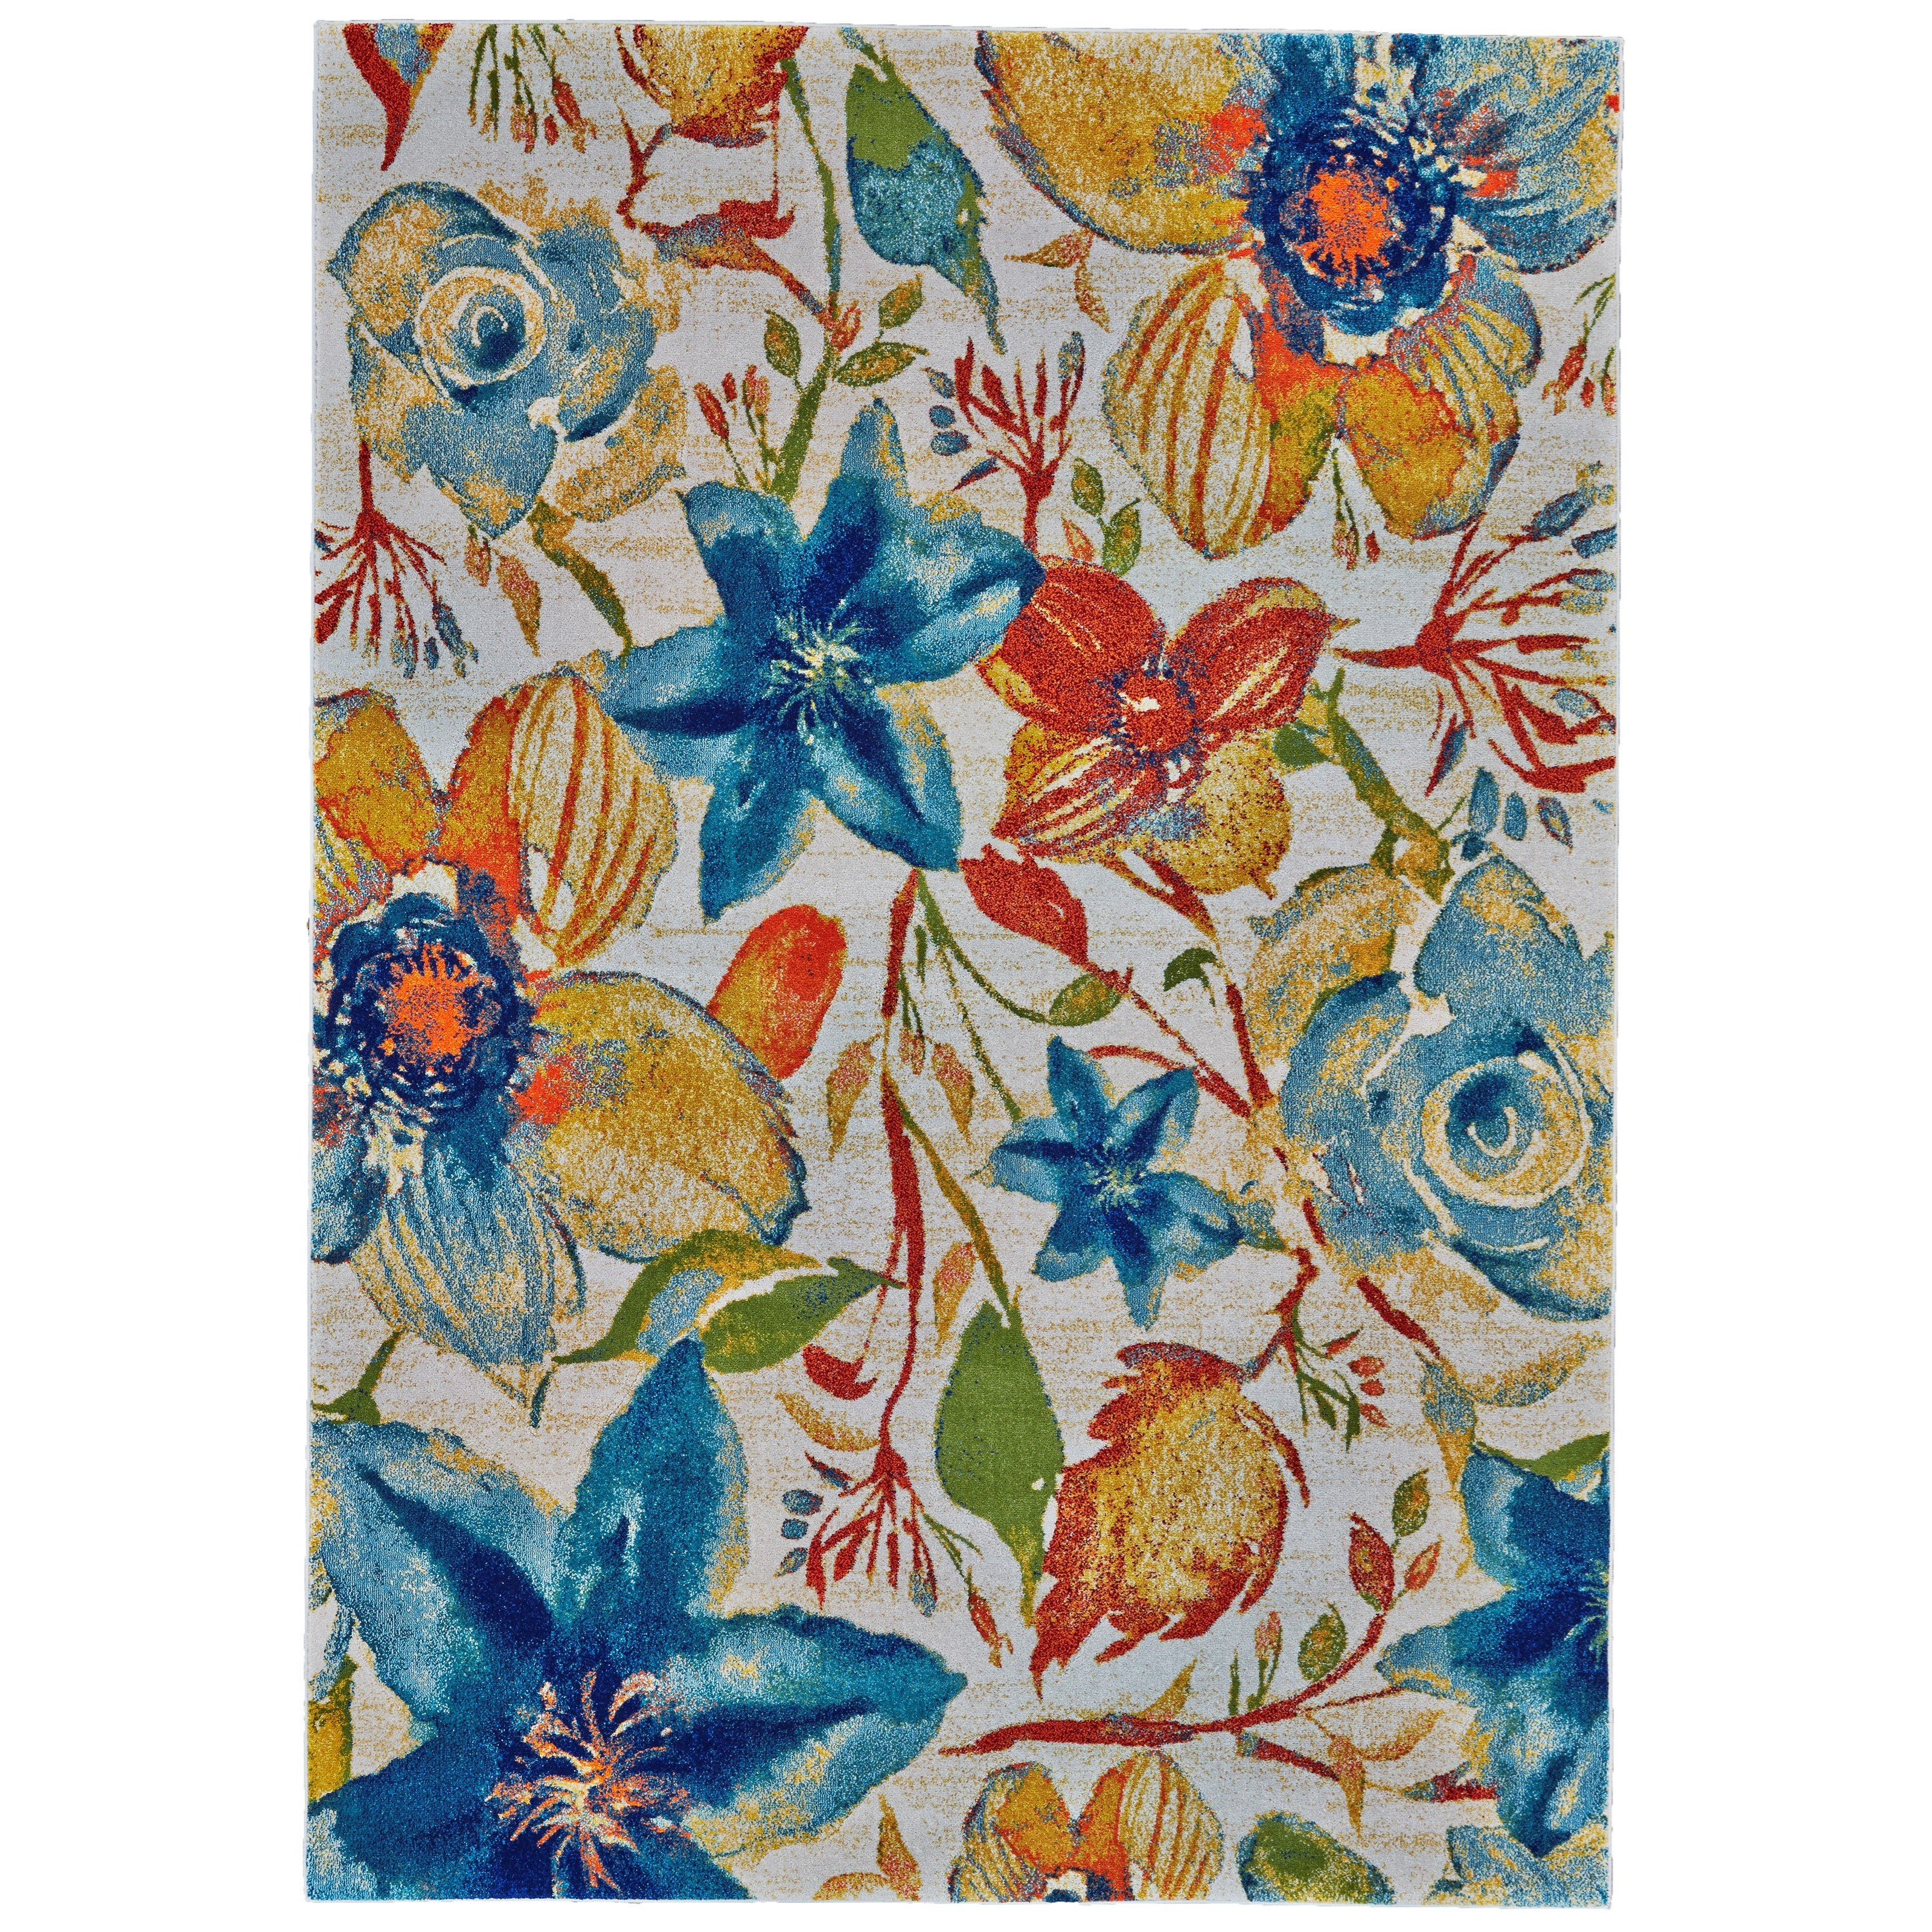 Archean Meadow 8' X 11' Area Rug by Feizy Rugs at Sprintz Furniture